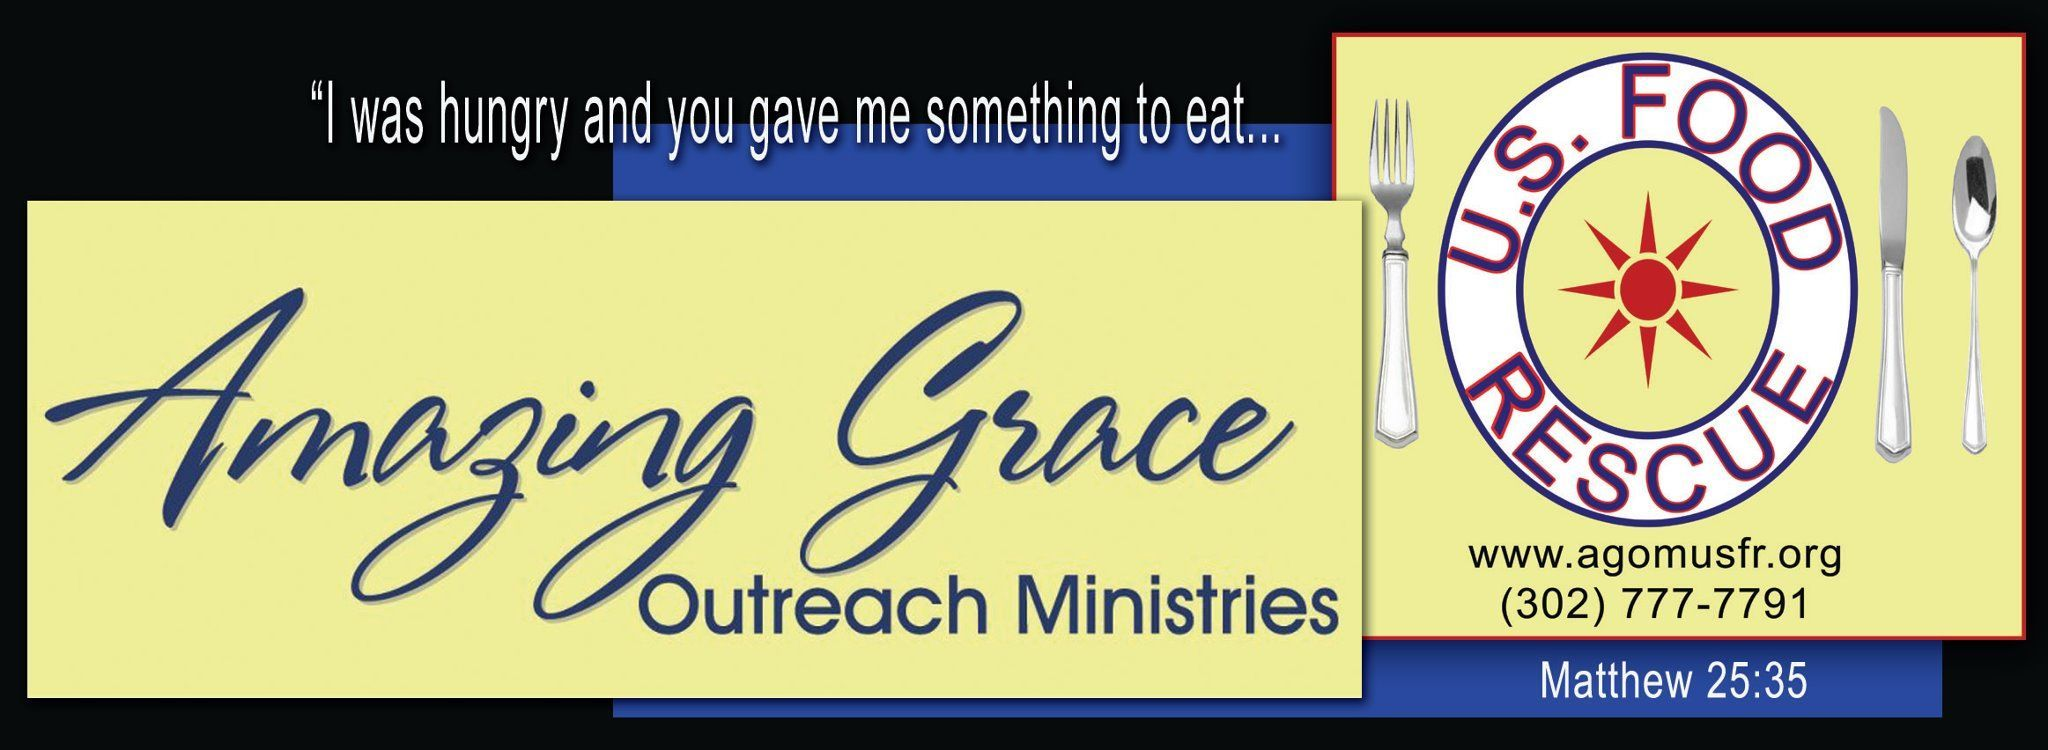 Amazing Grace Us Food Rescue